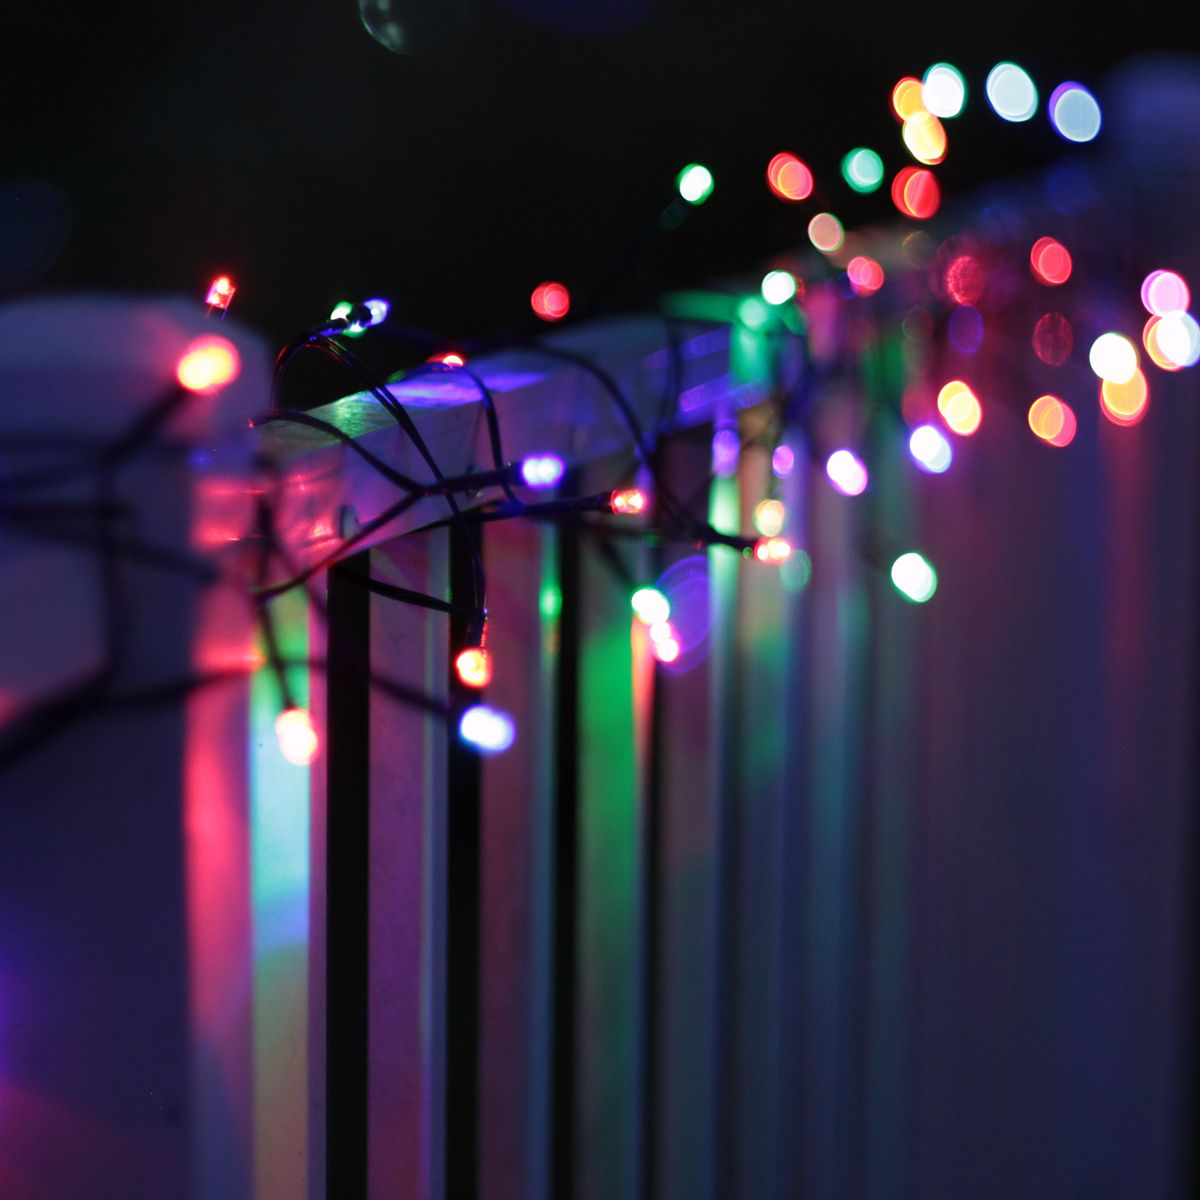 SOLAscape s Color-Changing Solar String Lights (50 LED bulbs on a 22 ft string) adorning a porch ...